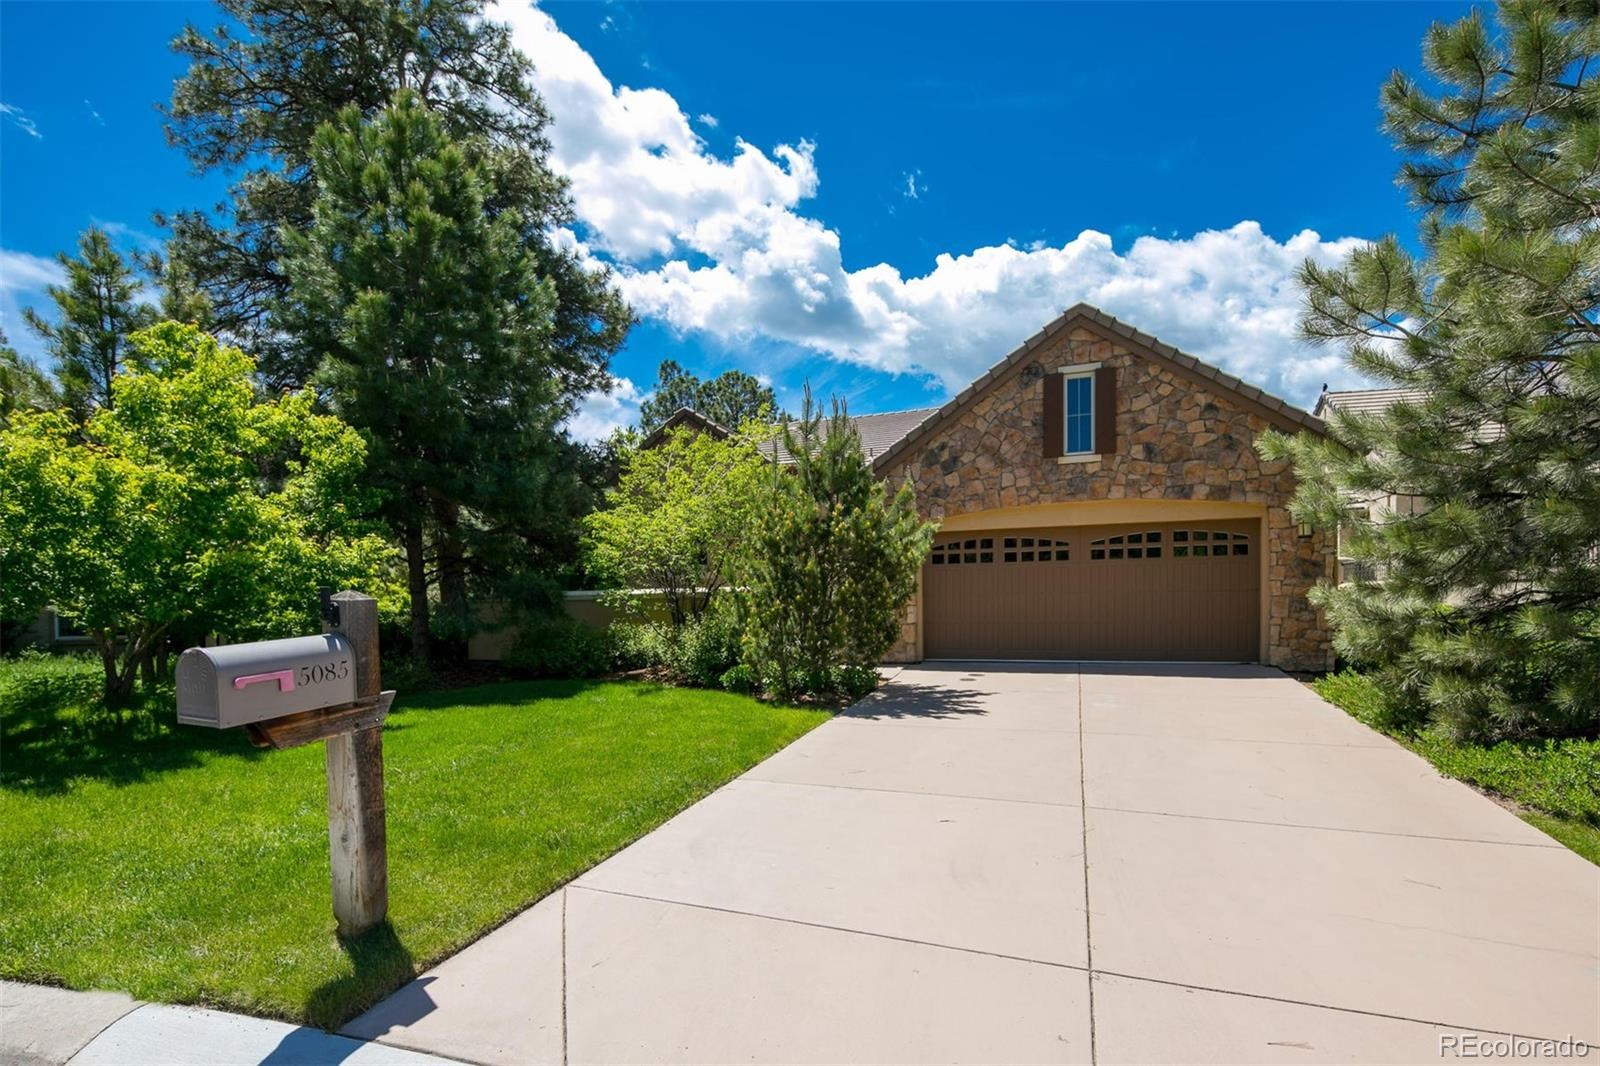 MLS# 5435747 - 4 - 5085 Hidden Pond Place, Castle Rock, CO 80108